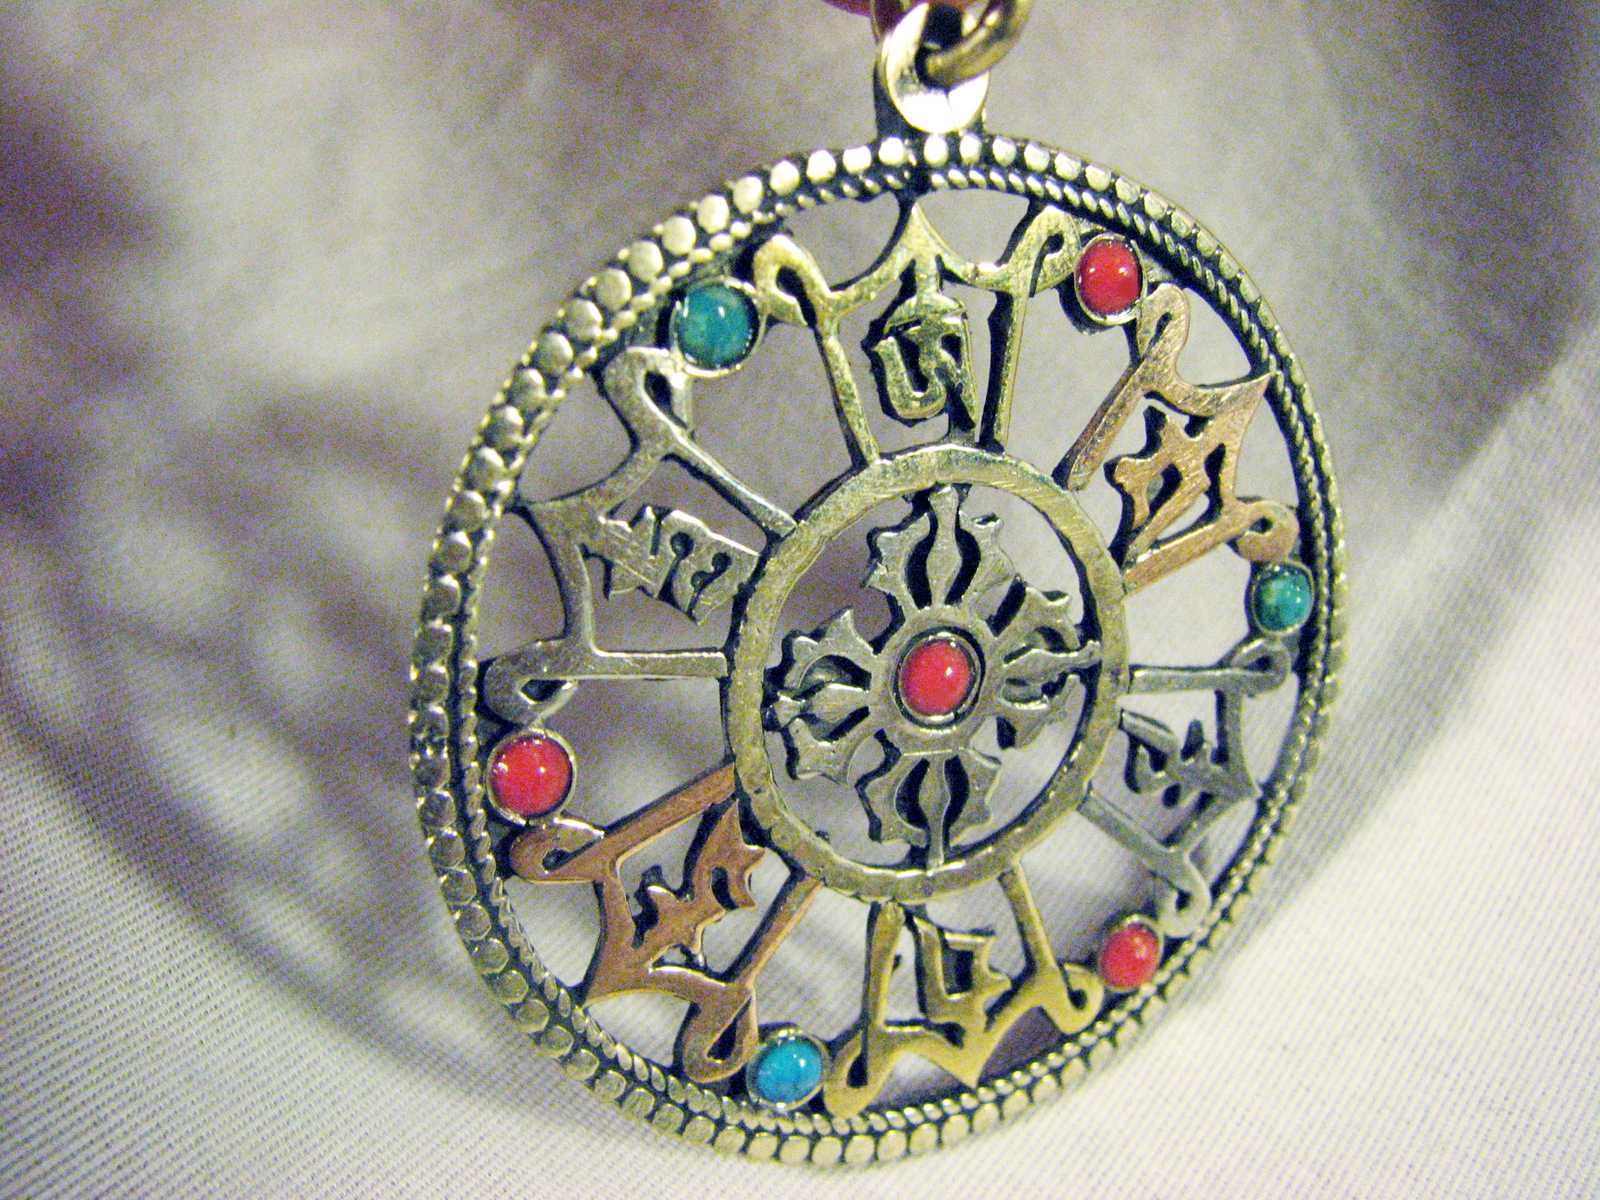 from dorje tibet listing fullxfull zoom pendant symbol with one yang double yin il